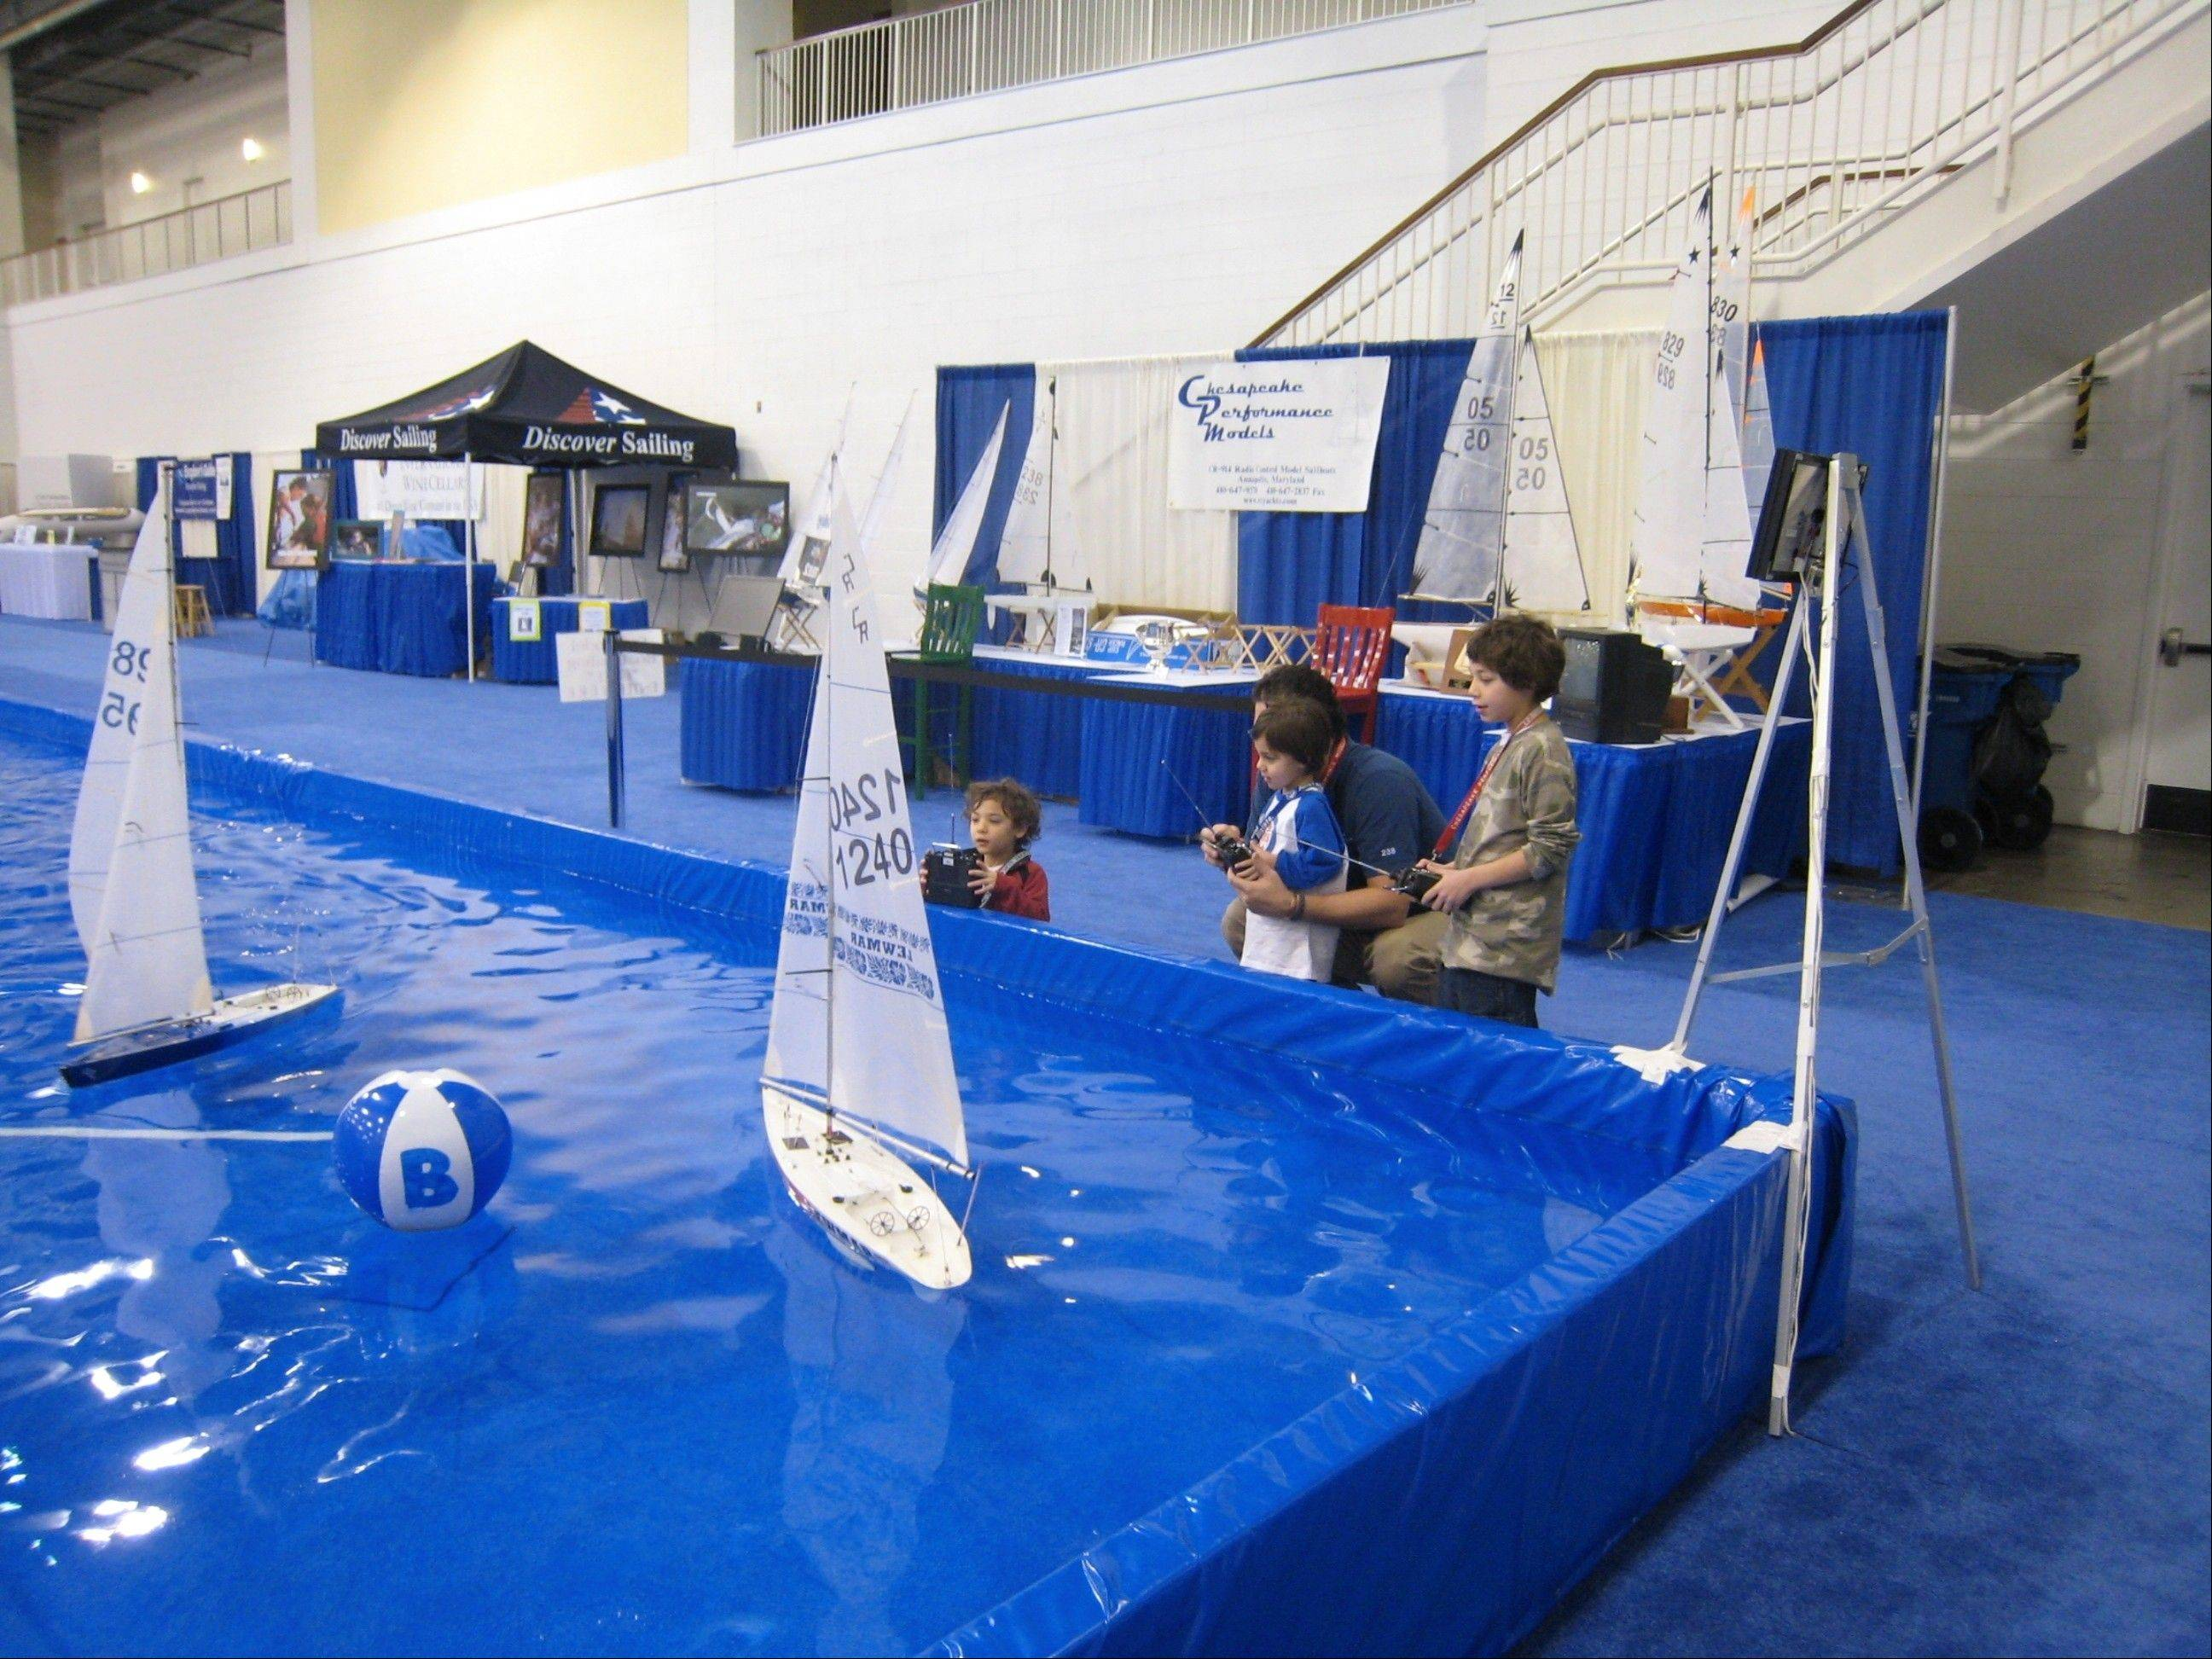 Strictly Sail Chicago 2012 at Navy Pier features demonstrations like remote-control sail boats.